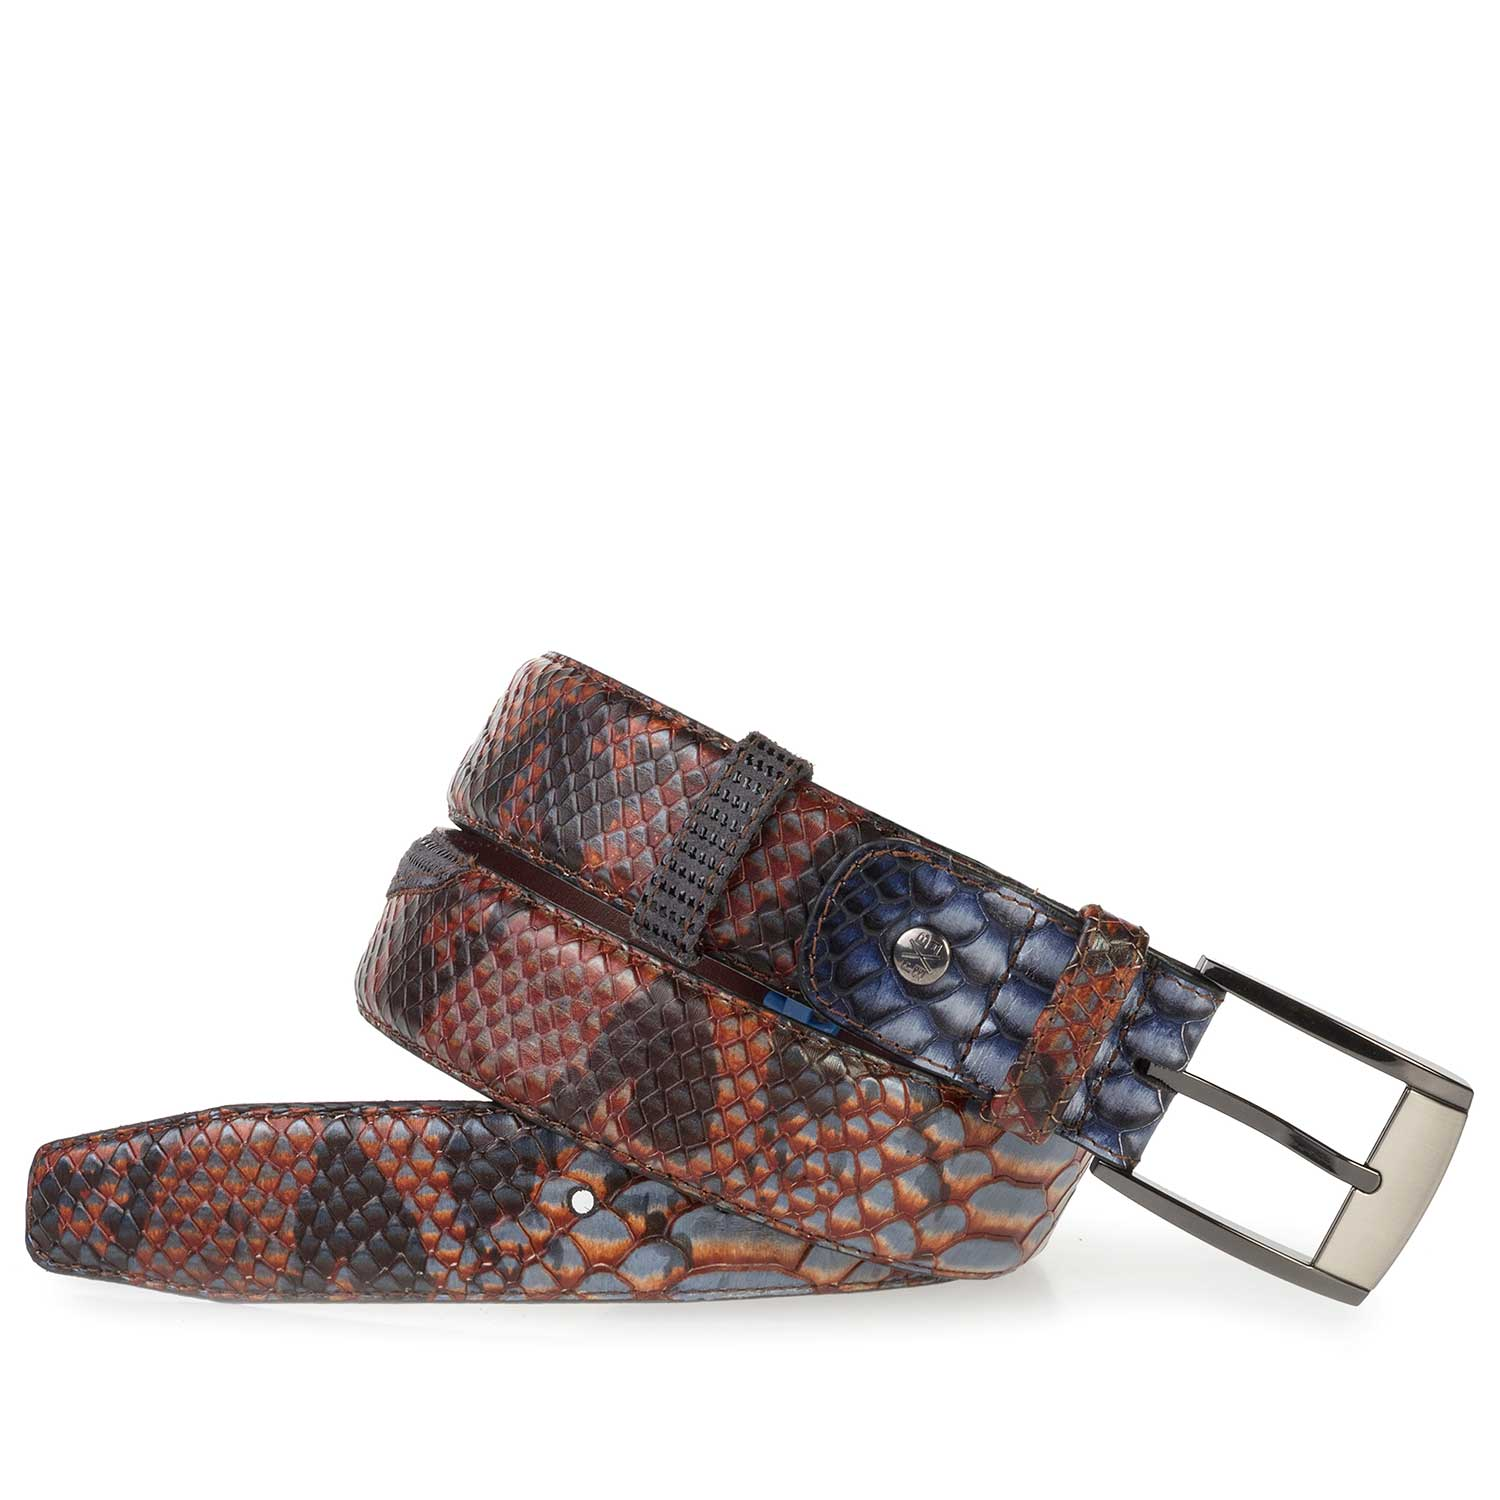 75176/06 - Calf's leather belt with a snake print